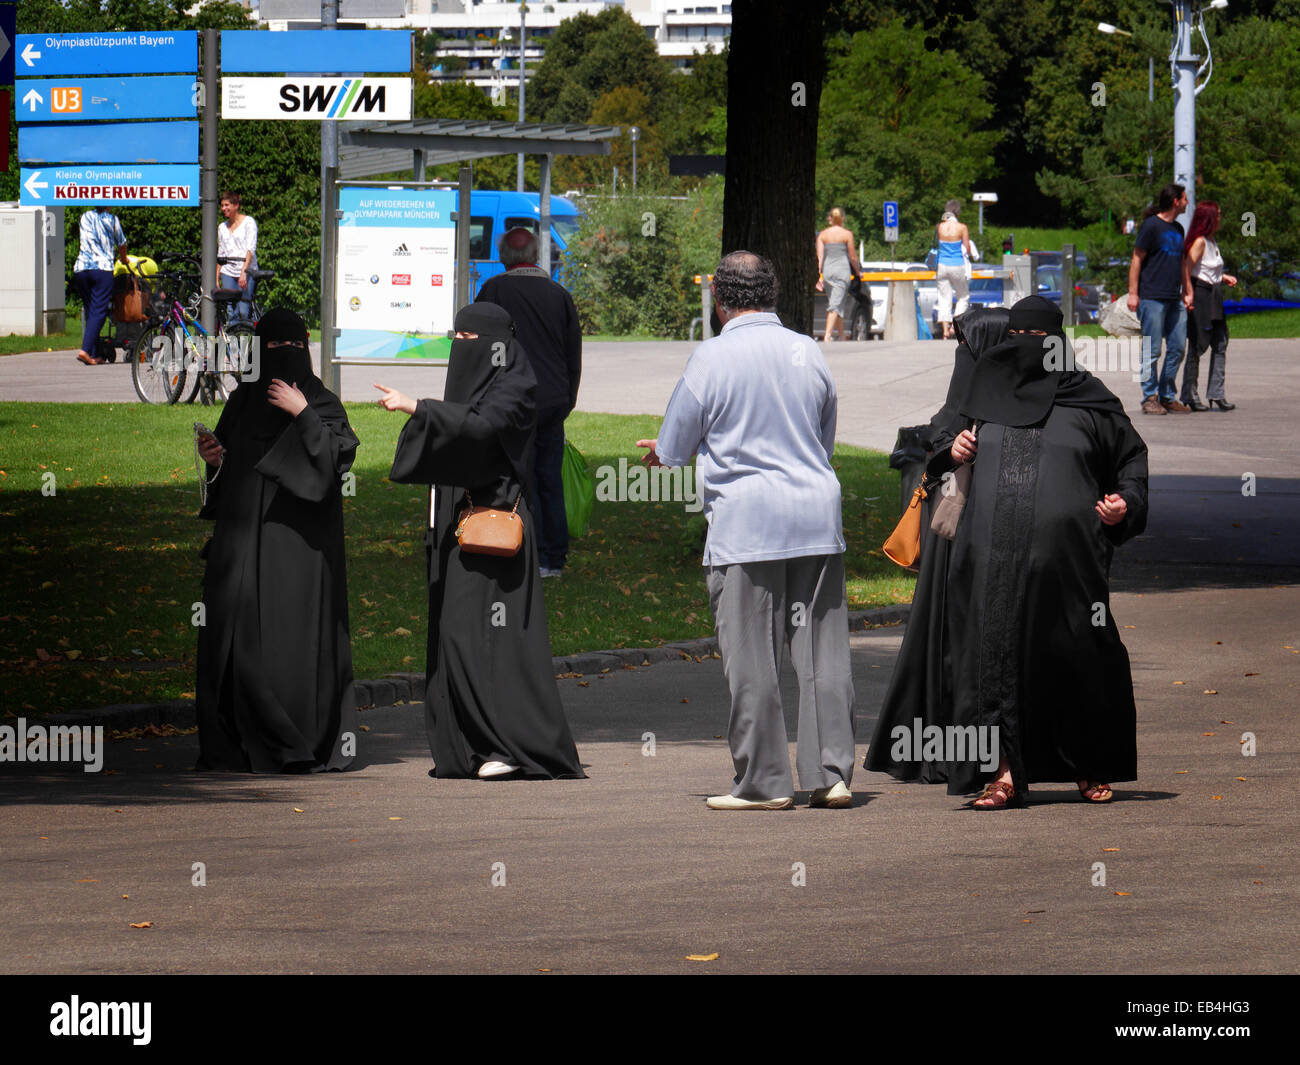 Arab Saudi Arabian Women tourists in traditional black Burka in Olympia Park Munich Germany Europe - Stock Image